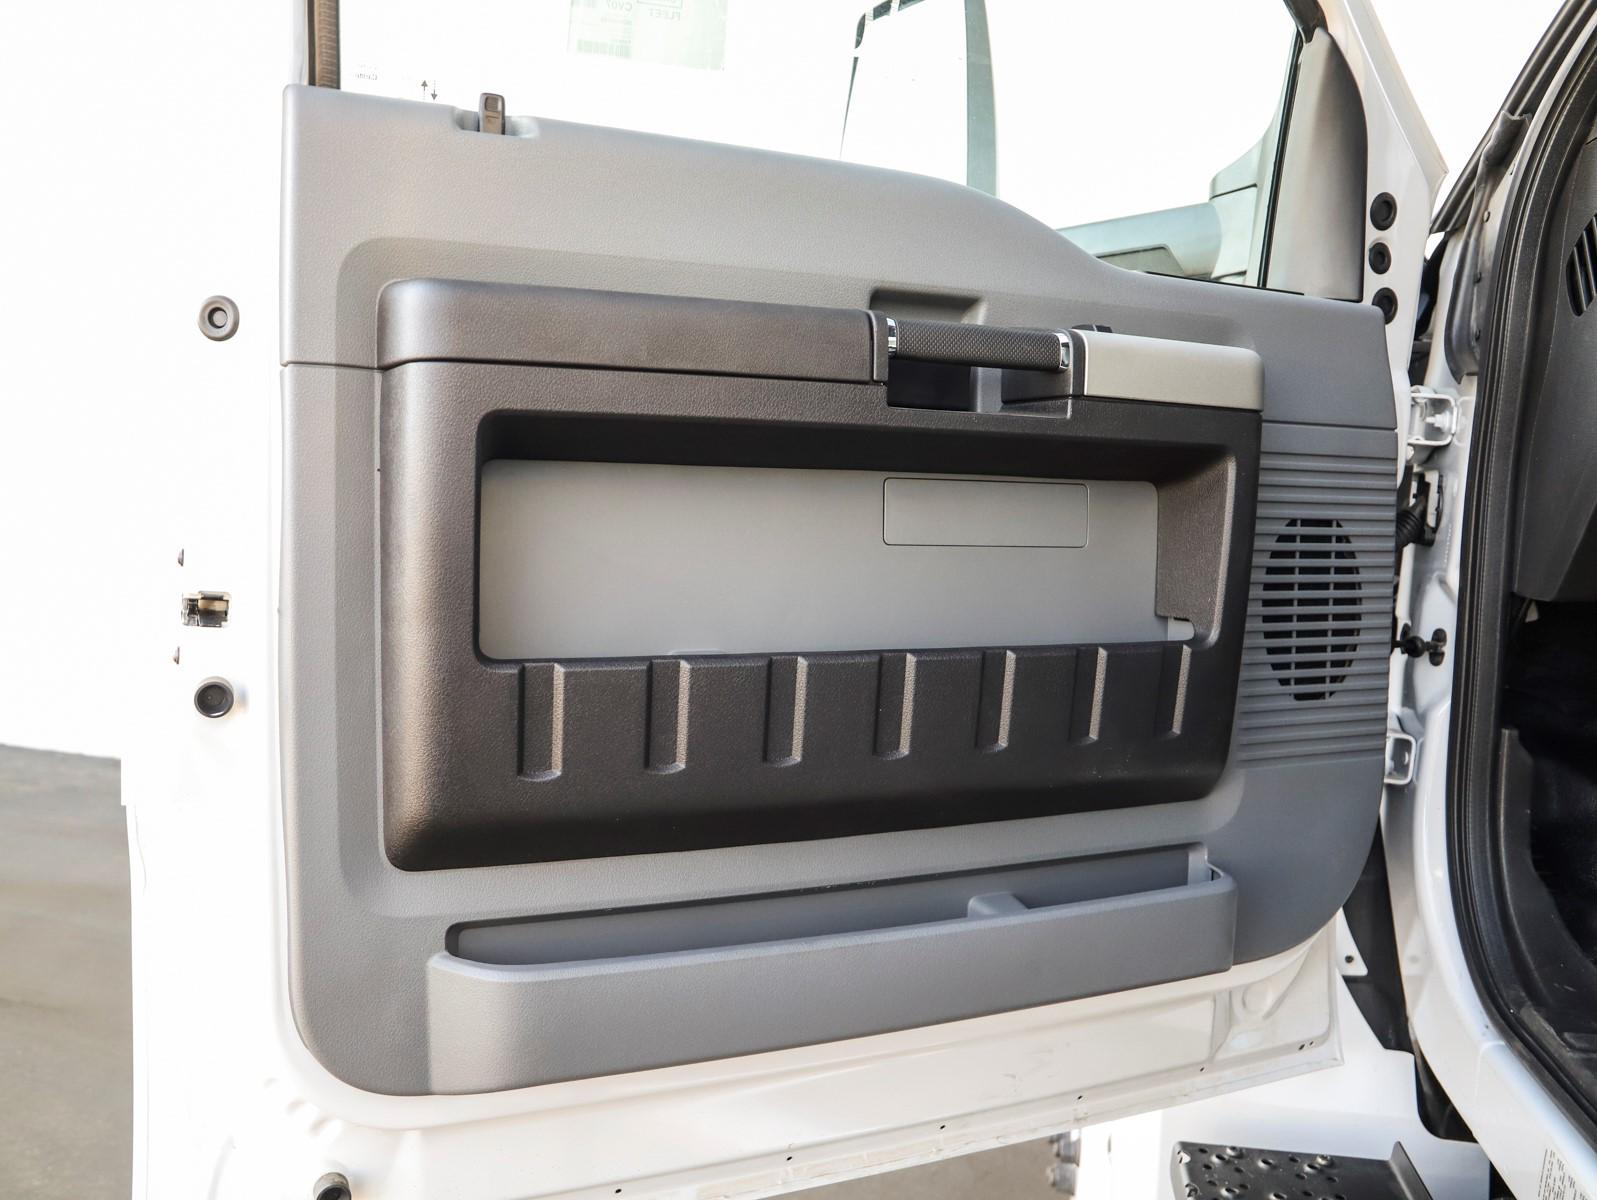 2021 Ford F-650 Regular Cab DRW 4x2, Scelzi Dump Body #E210034 - photo 12